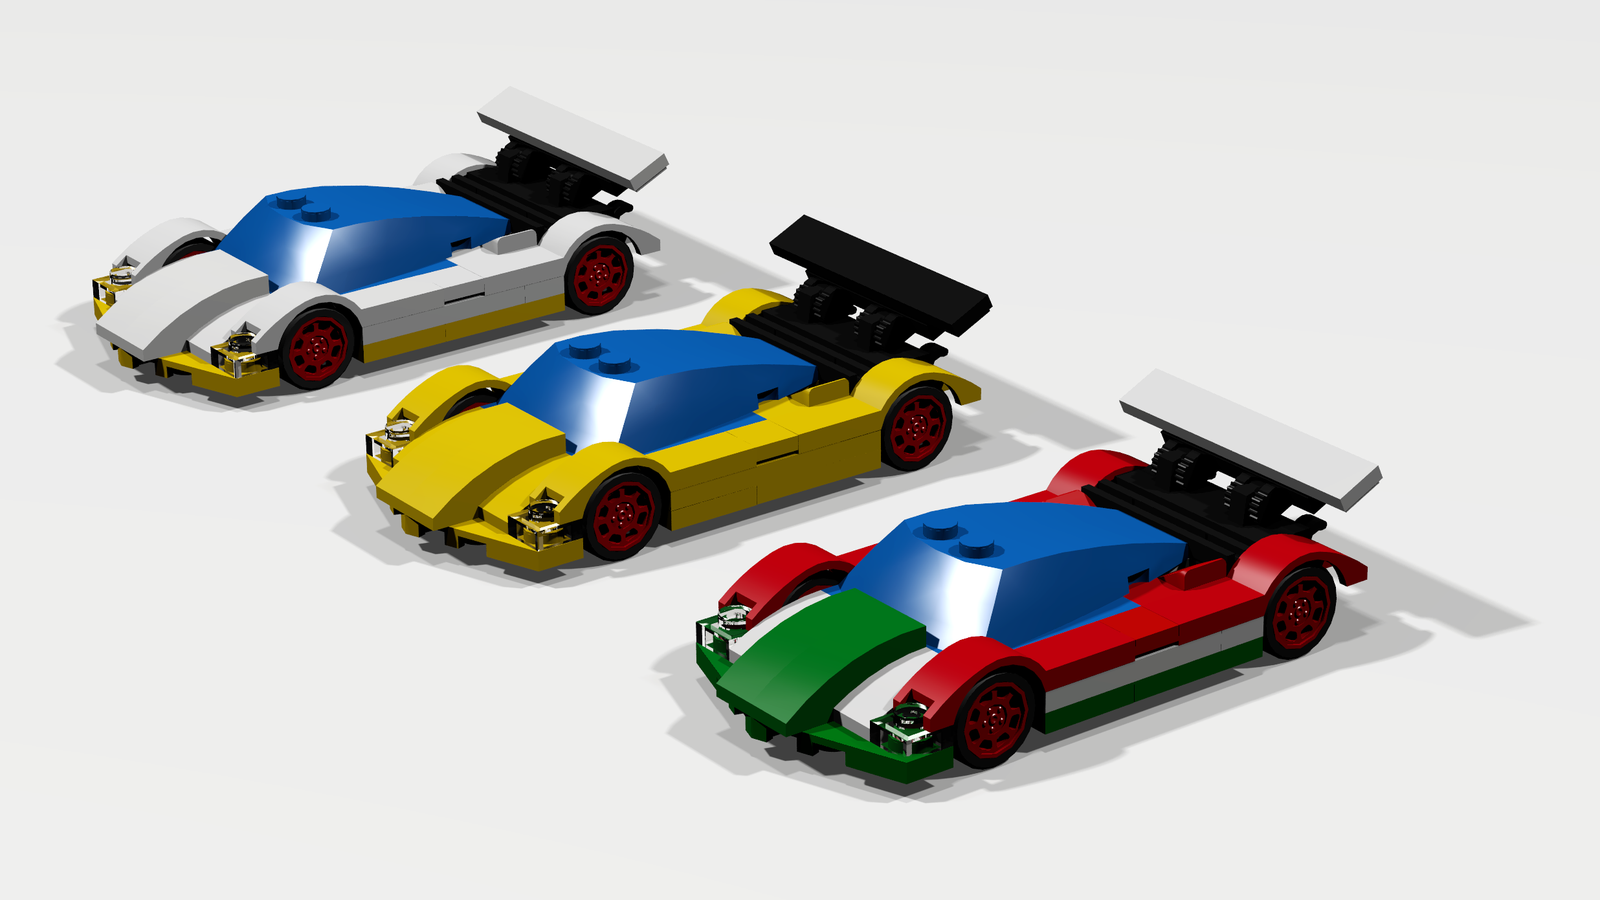 Images of Lego Race Car Instructions - #rock-cafe